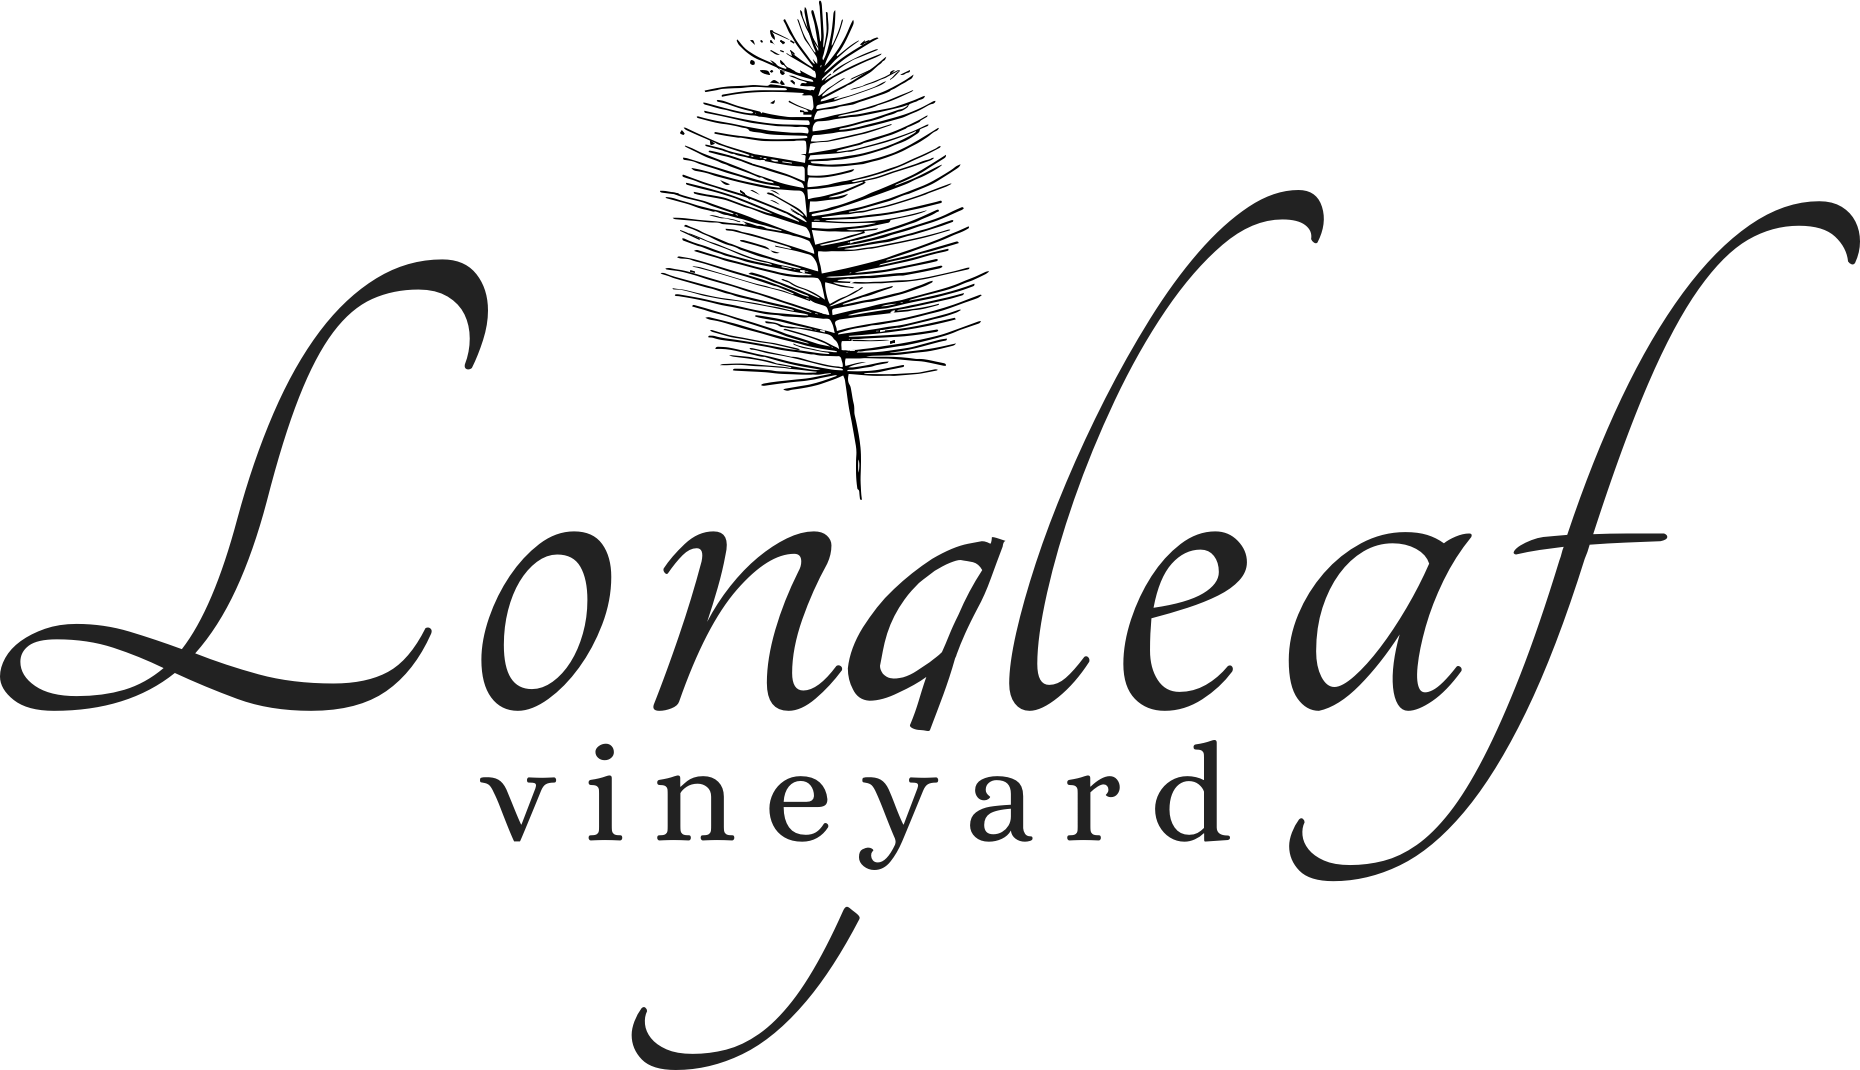 longleaf-logo-vineyard-asheville-wedding-events